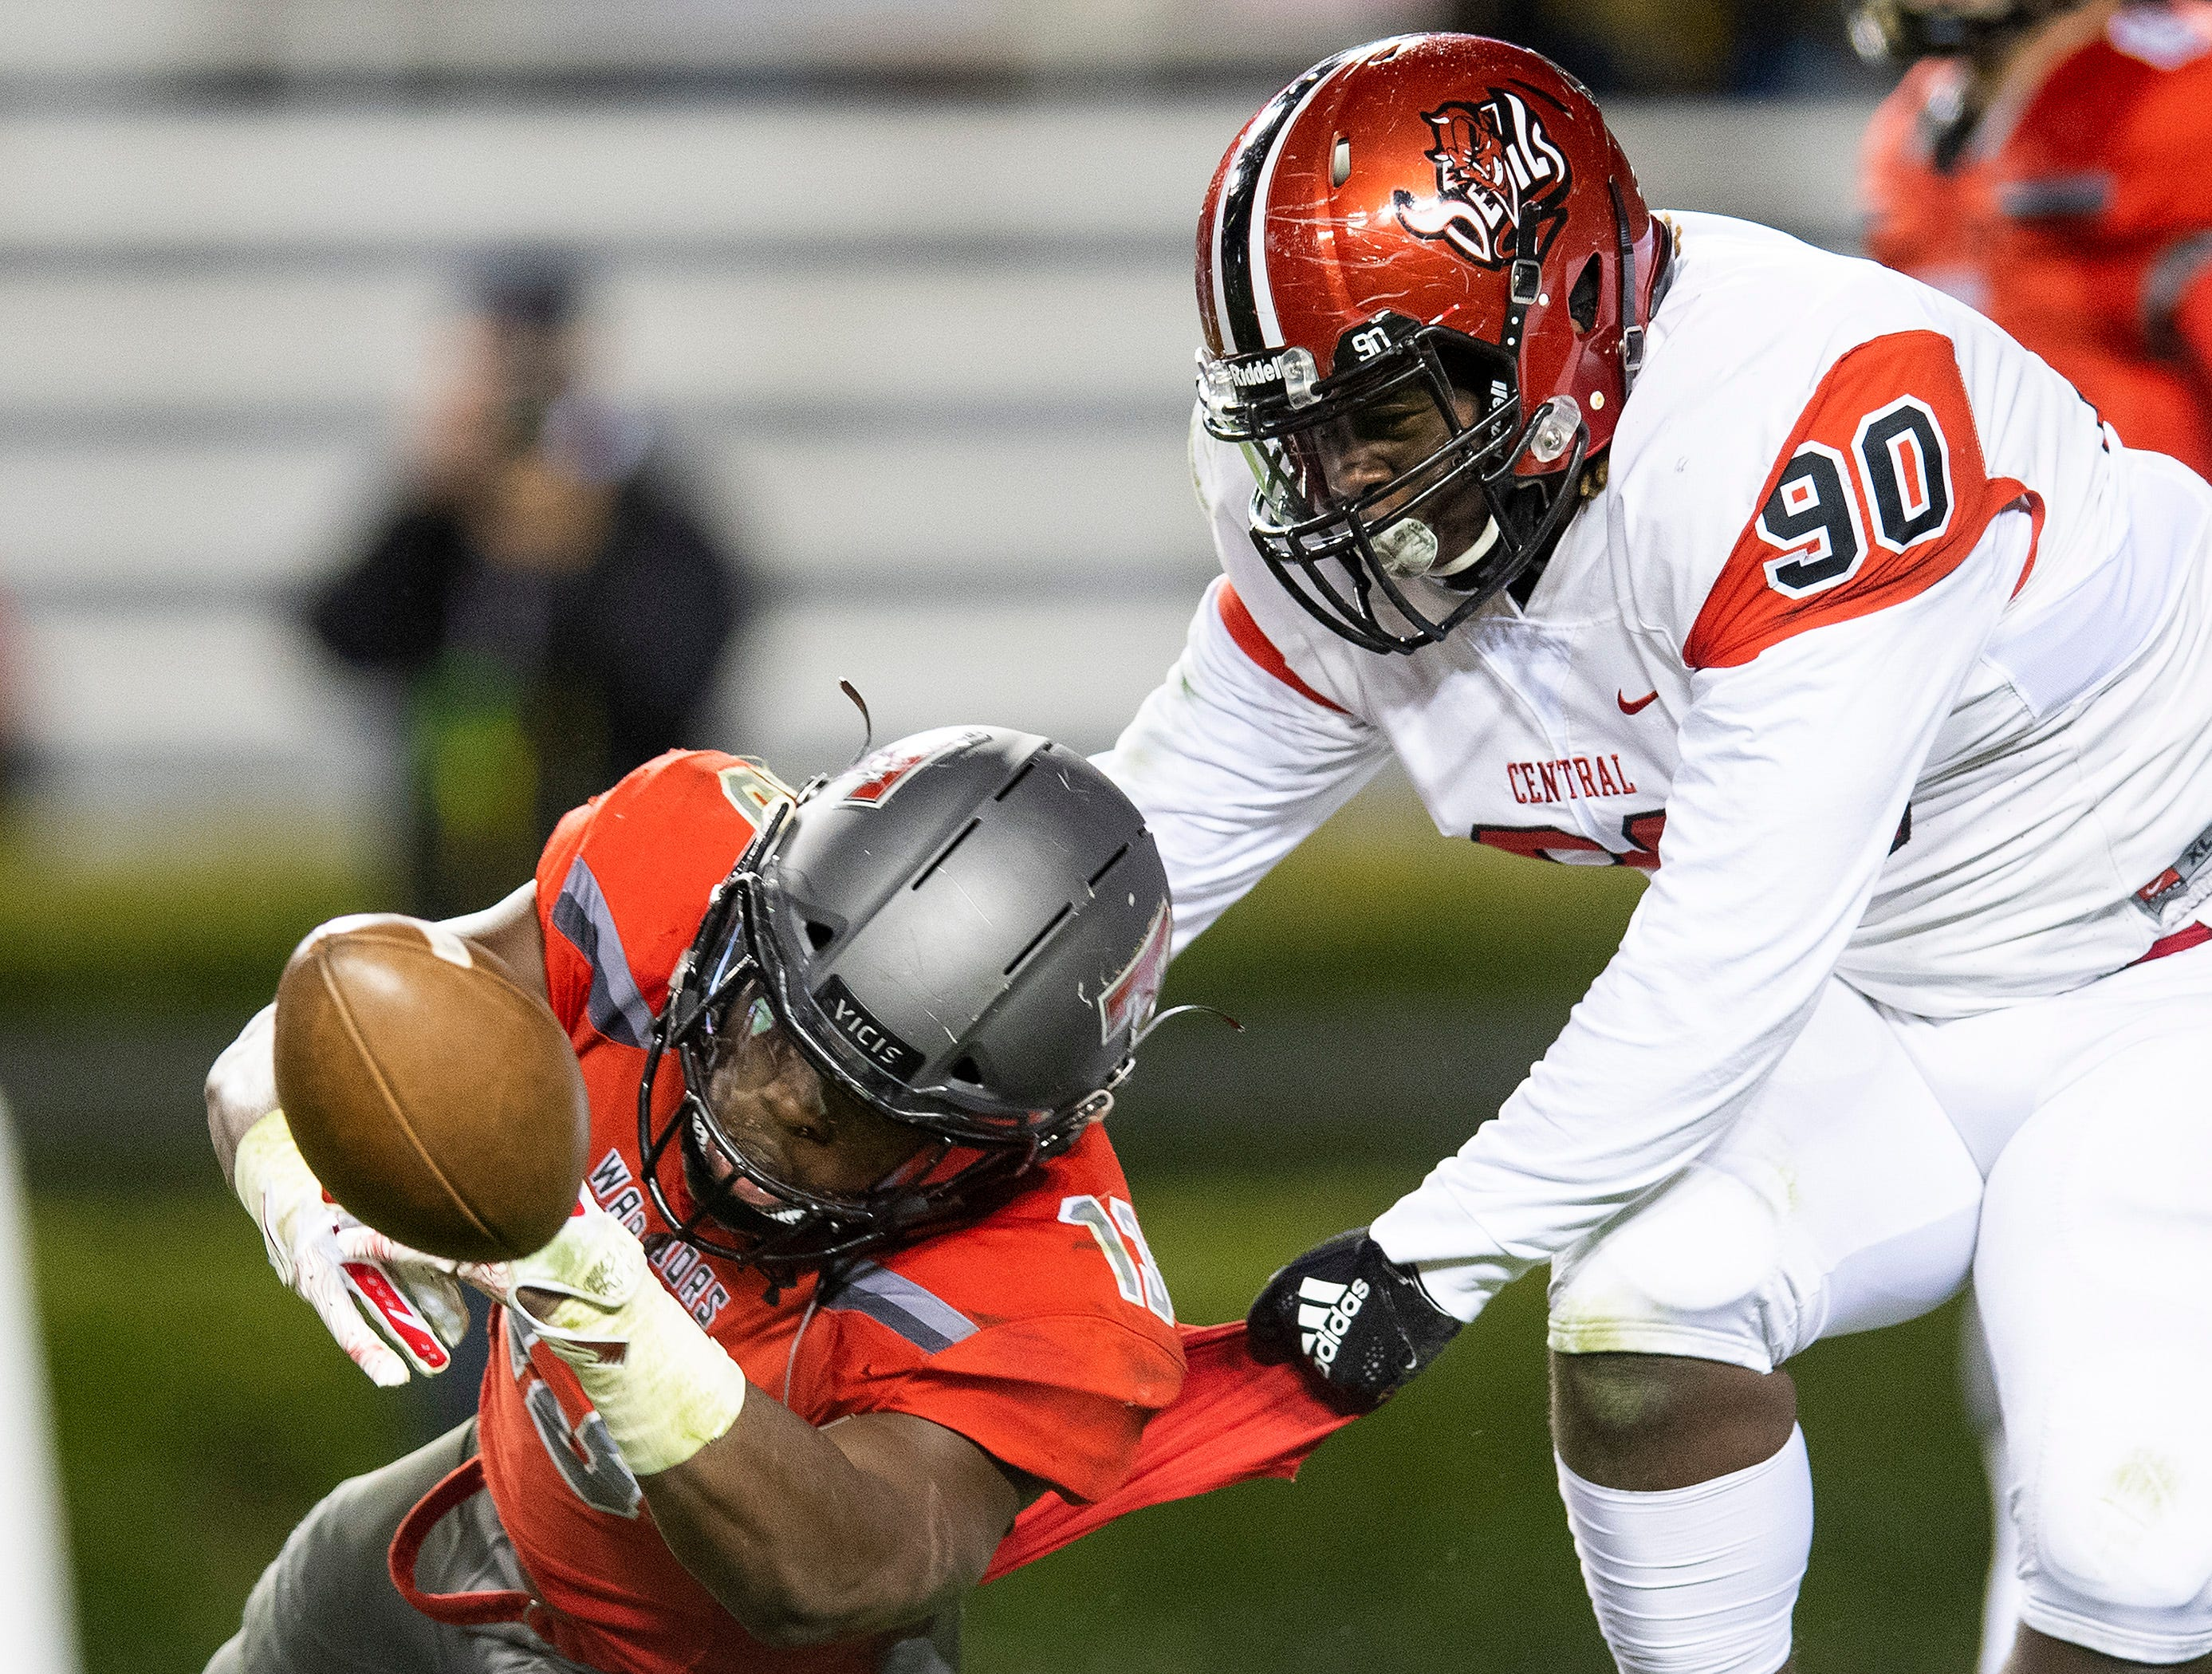 Thompson's Shadrick Byrd fumbles the ball against Central-Phenix City's Vontavious Maddox during the AHSAA Class 7A State Championship Football Game at Jordan Hare Stadium in Auburn, Ala., on Wednesday evening December 5, 2018.